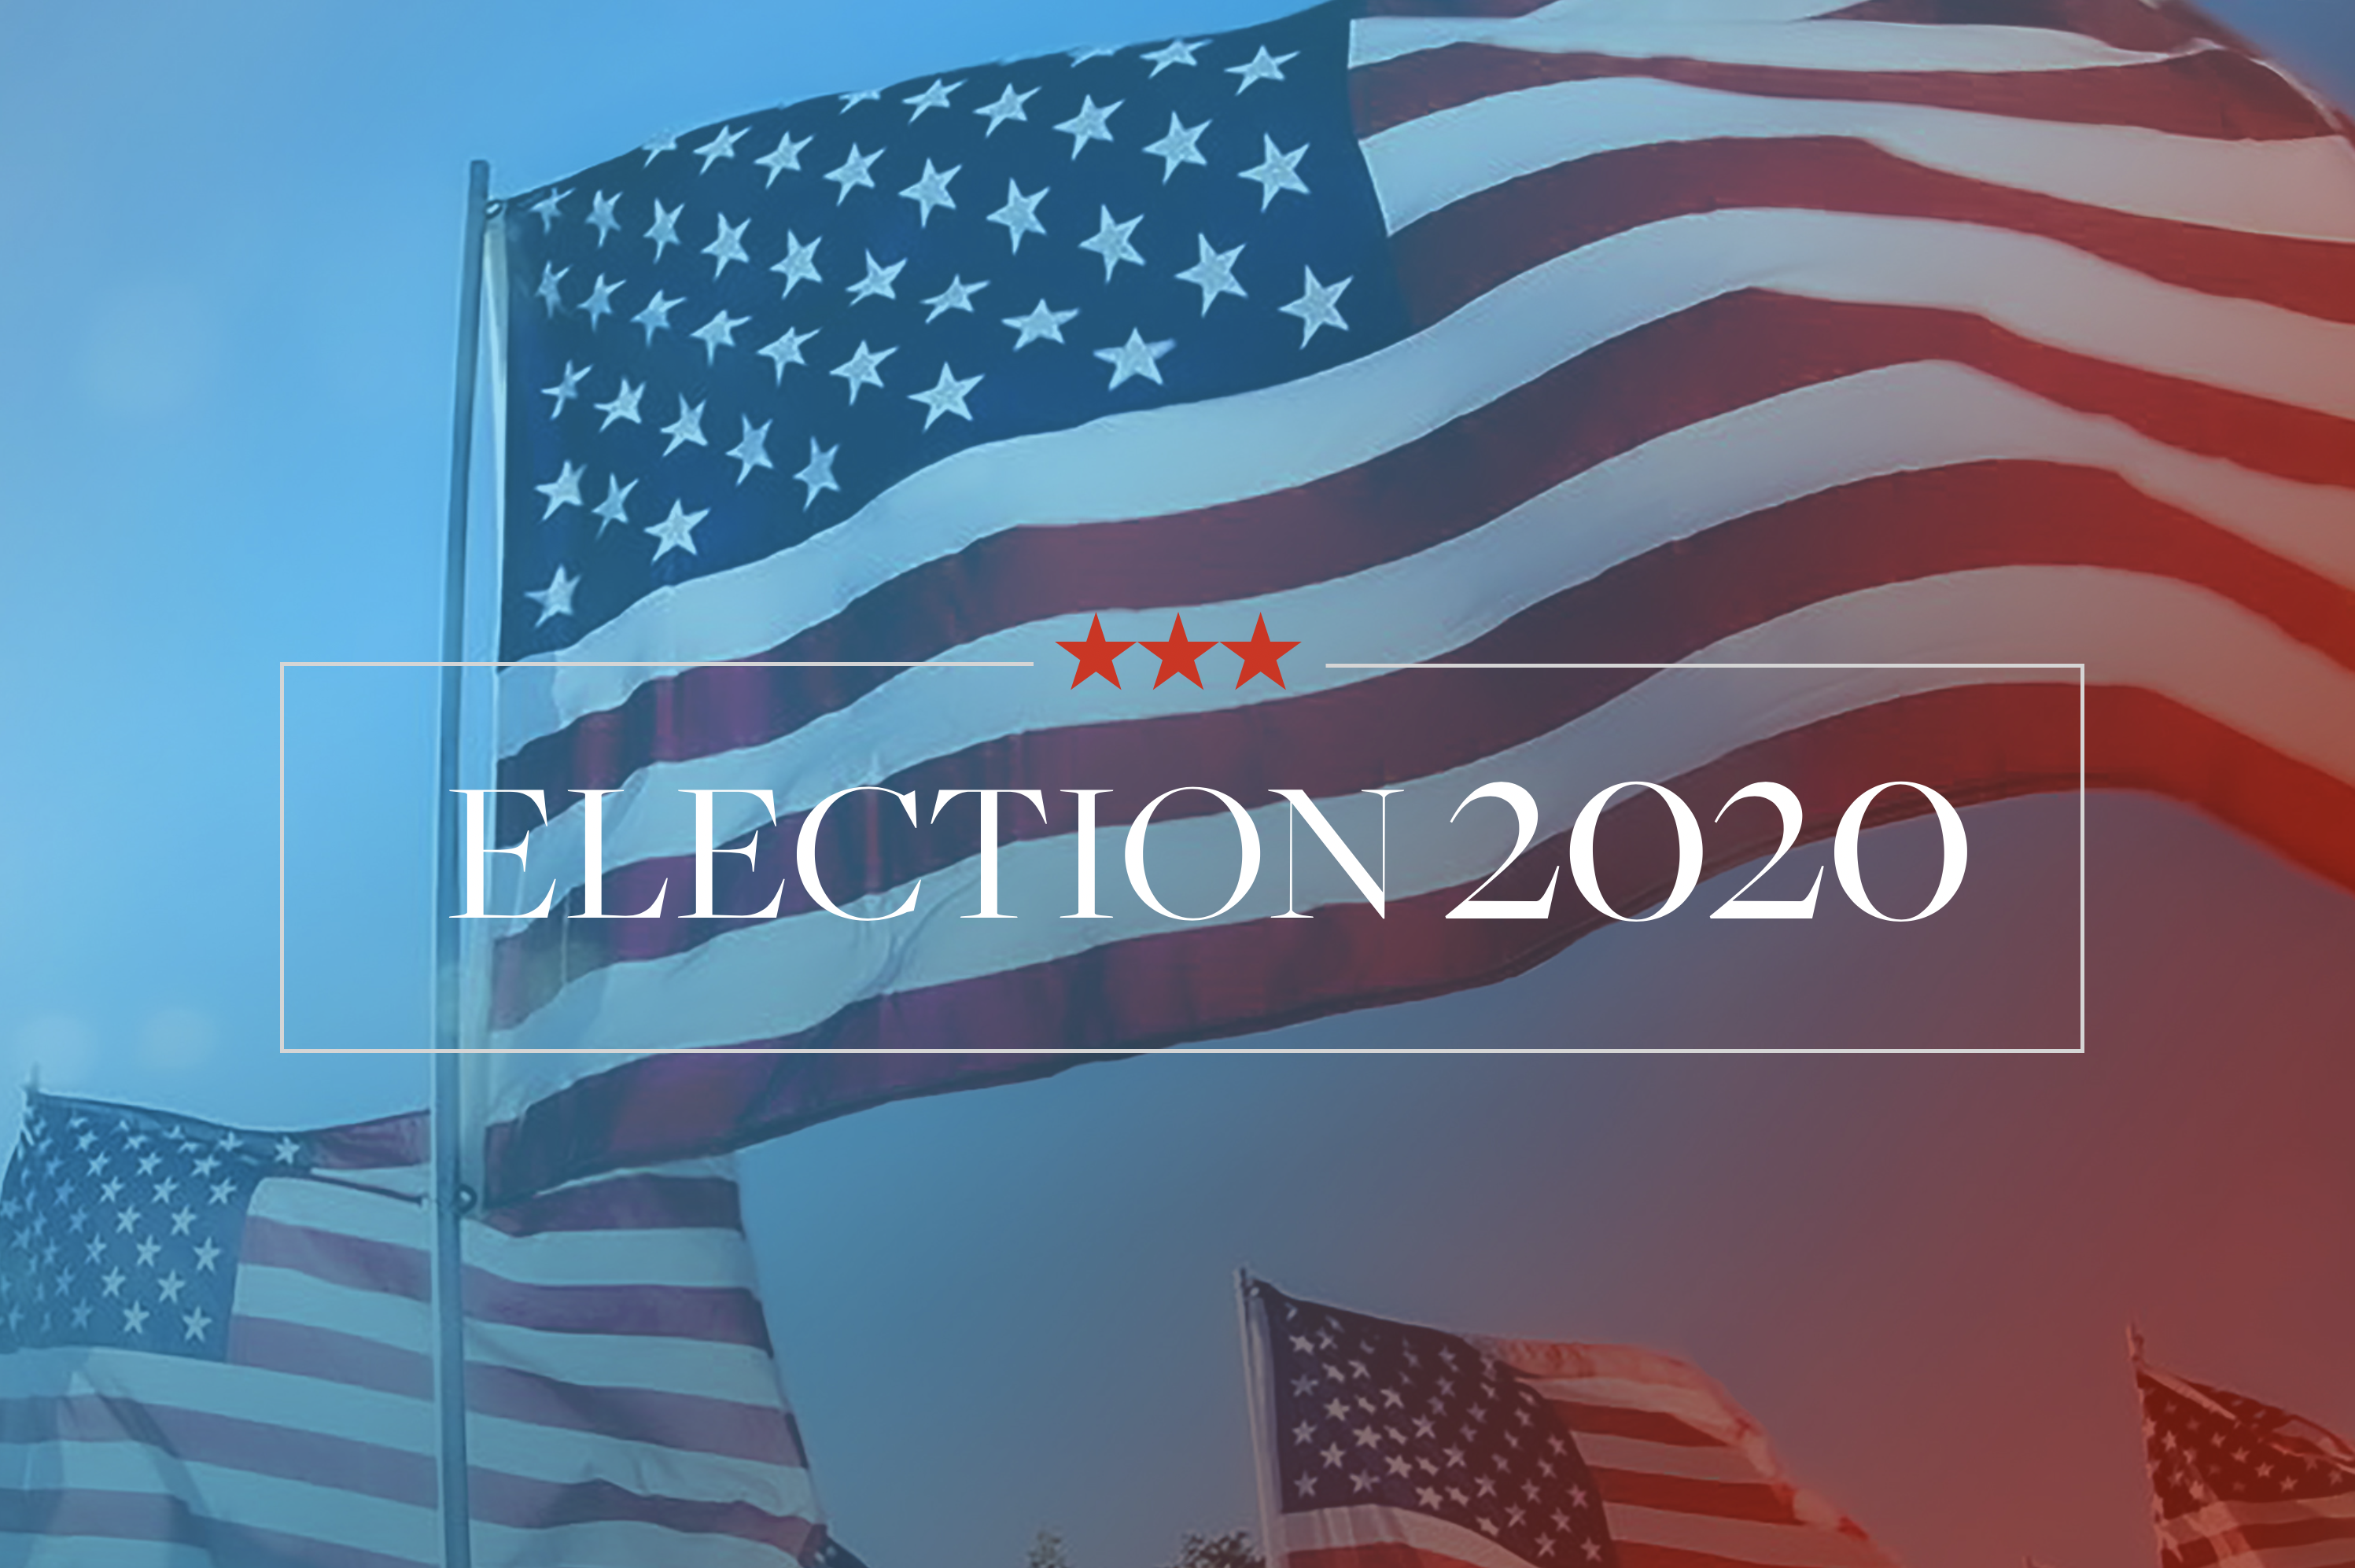 Kenneth Richard Speaks to the 2020 US Election